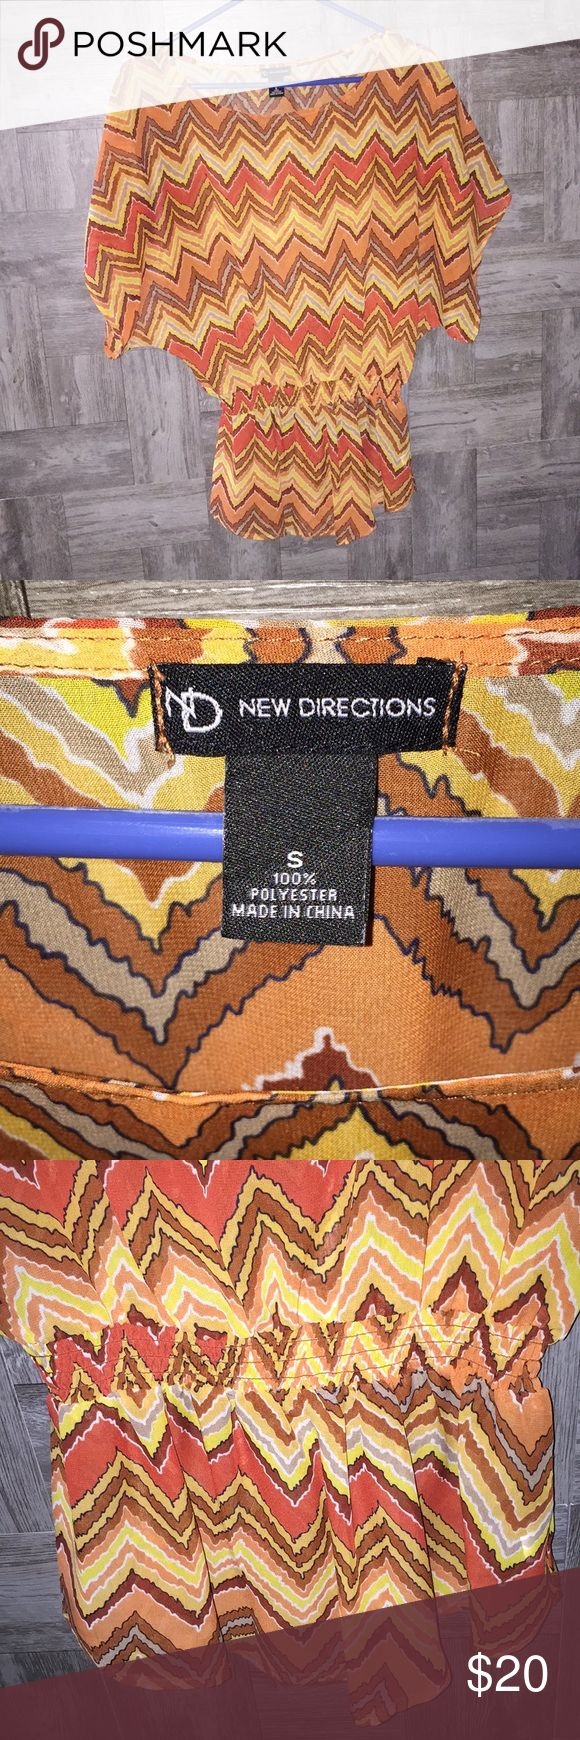 New Directions Chevron Top This is definitely fall colors.  Chevron top of burnt orange, yellow, browns, white and black.  Has the elastic around waist and is sheer as well.  Dress it up for a night on the town or dress it down with jeans or leggings.  Great shape!  Super cute! new directions Tops Blouses